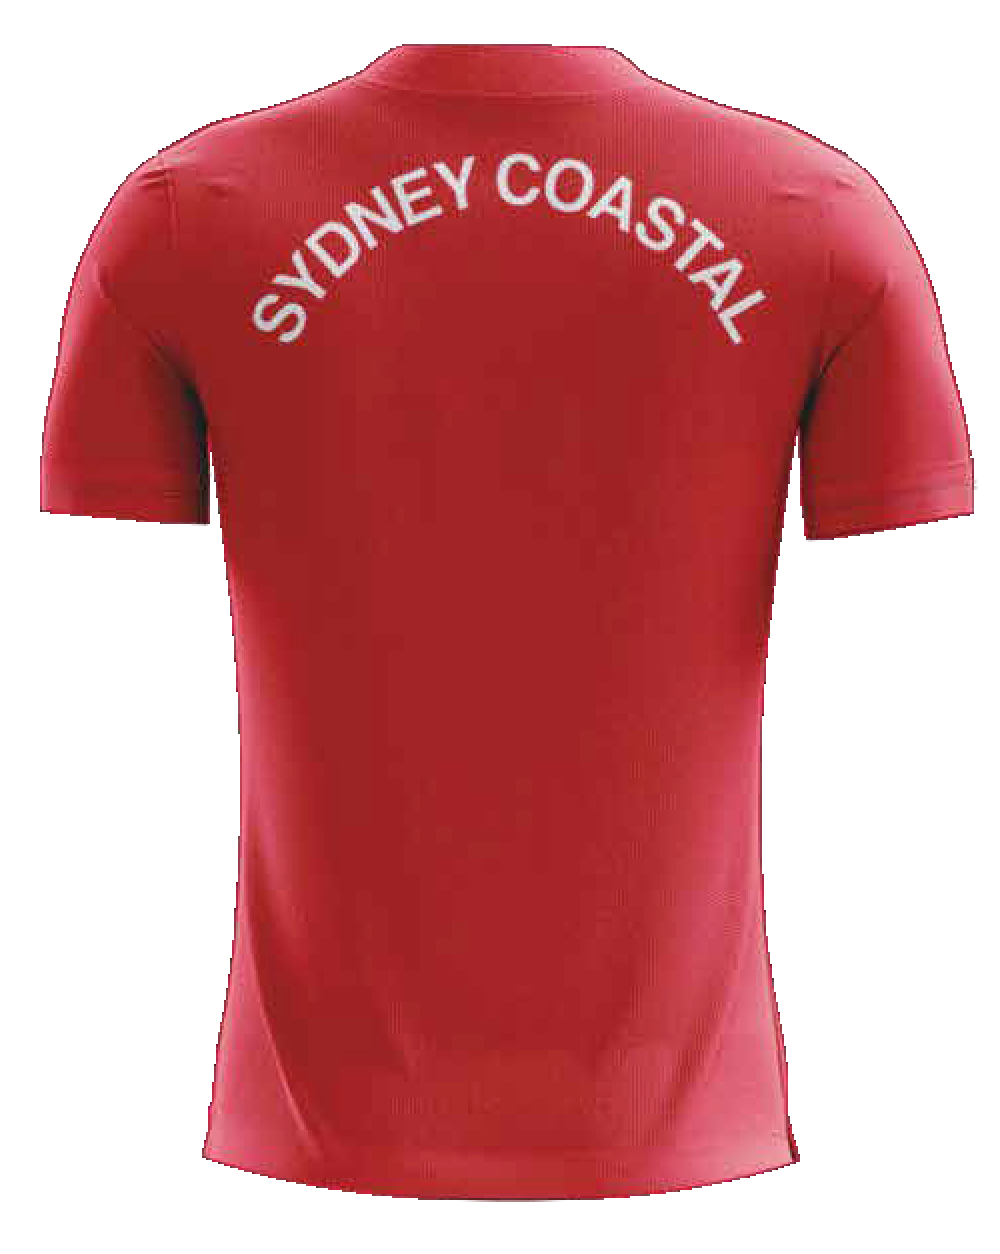 Sydney Coastal Cricket Supporters Shirt Female